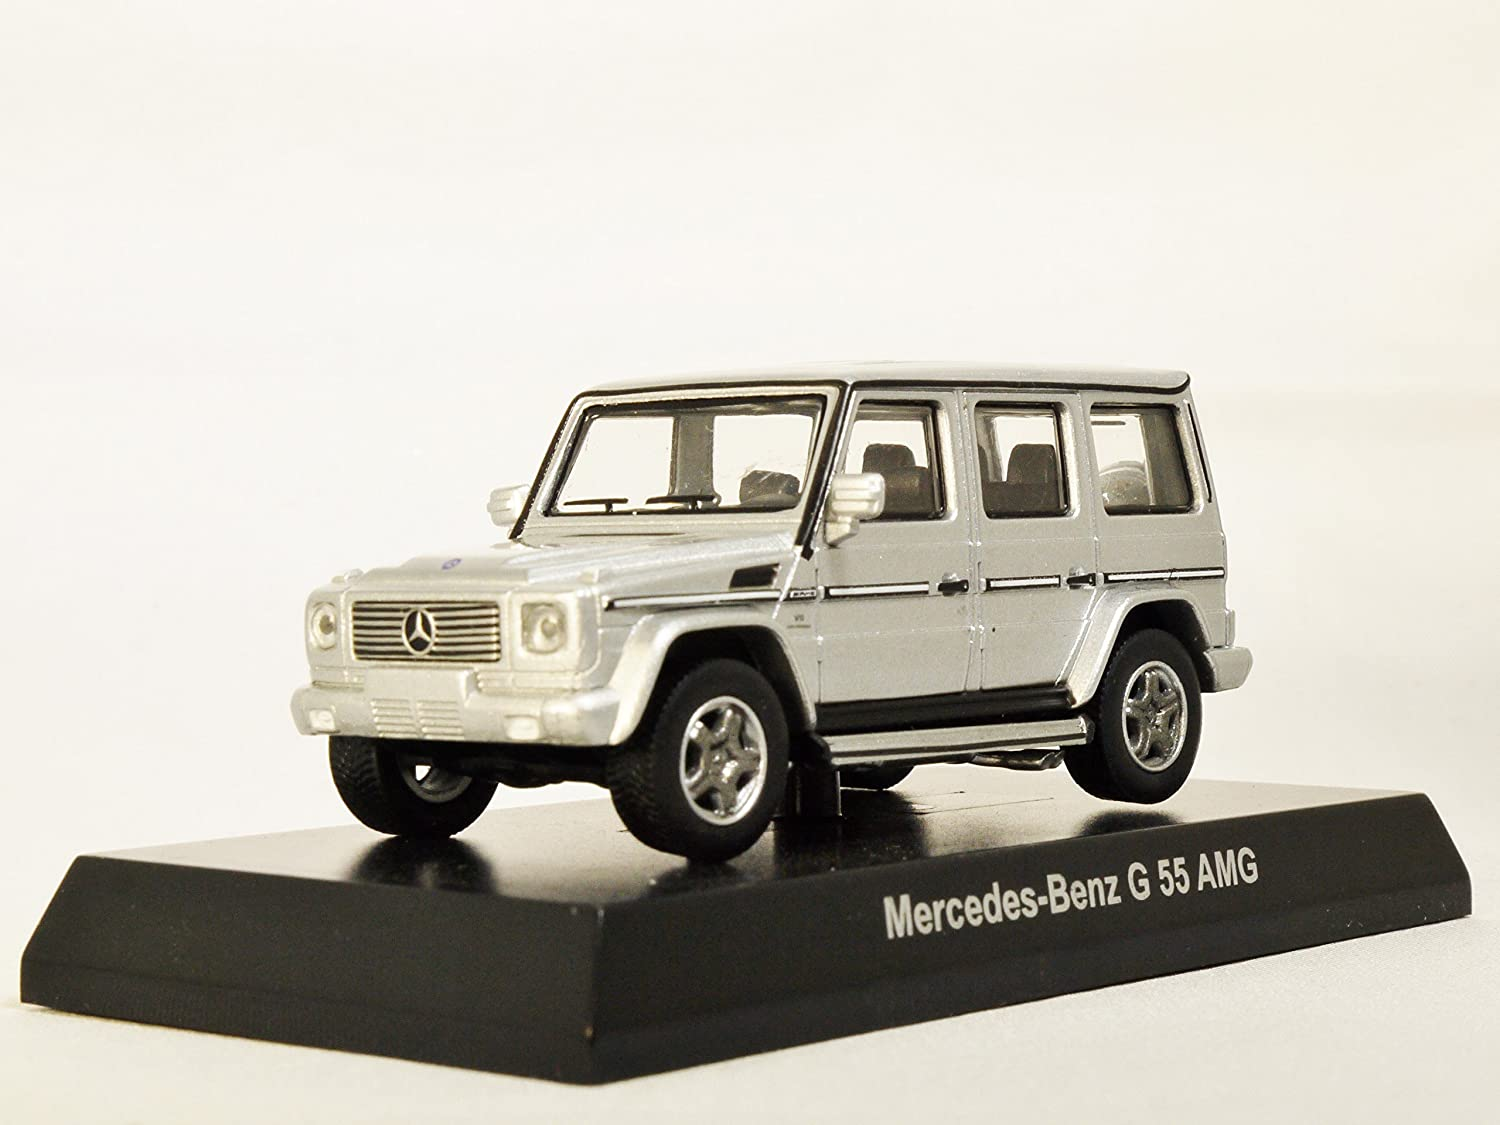 Buy Original Kyosho 1 64 Mercedes Benz Amg G Class Wagen Suv 55 Silver Japan Import Mini Diecast Car Figure Online At Low Prices In India